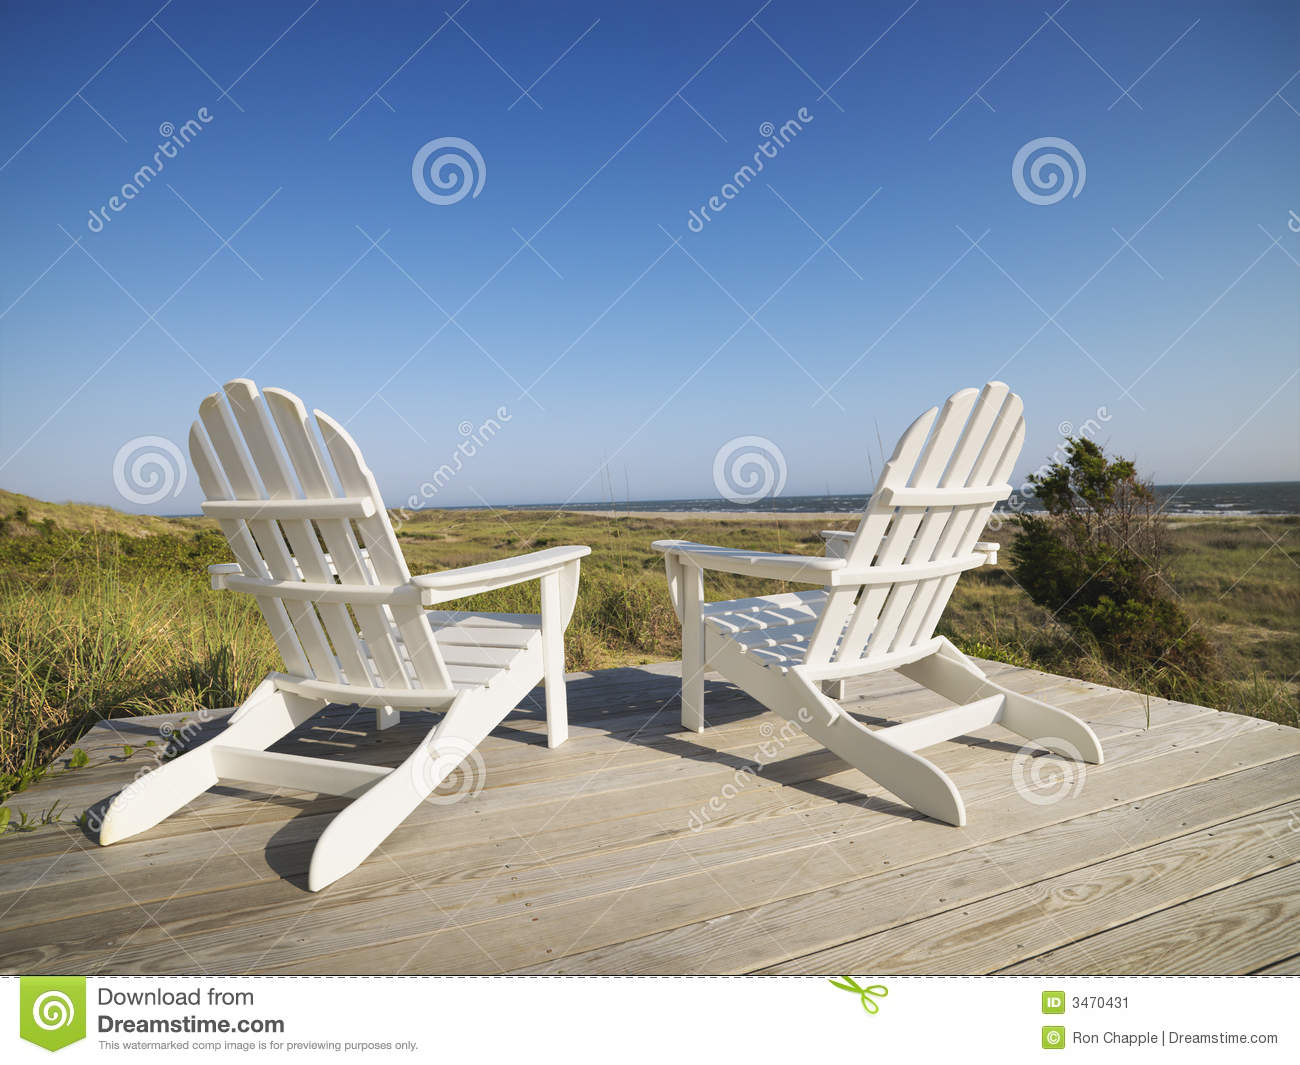 adirondack wooden chair plans wedding cover alternatives deck chairs at beach. stock image. image of - 3470431